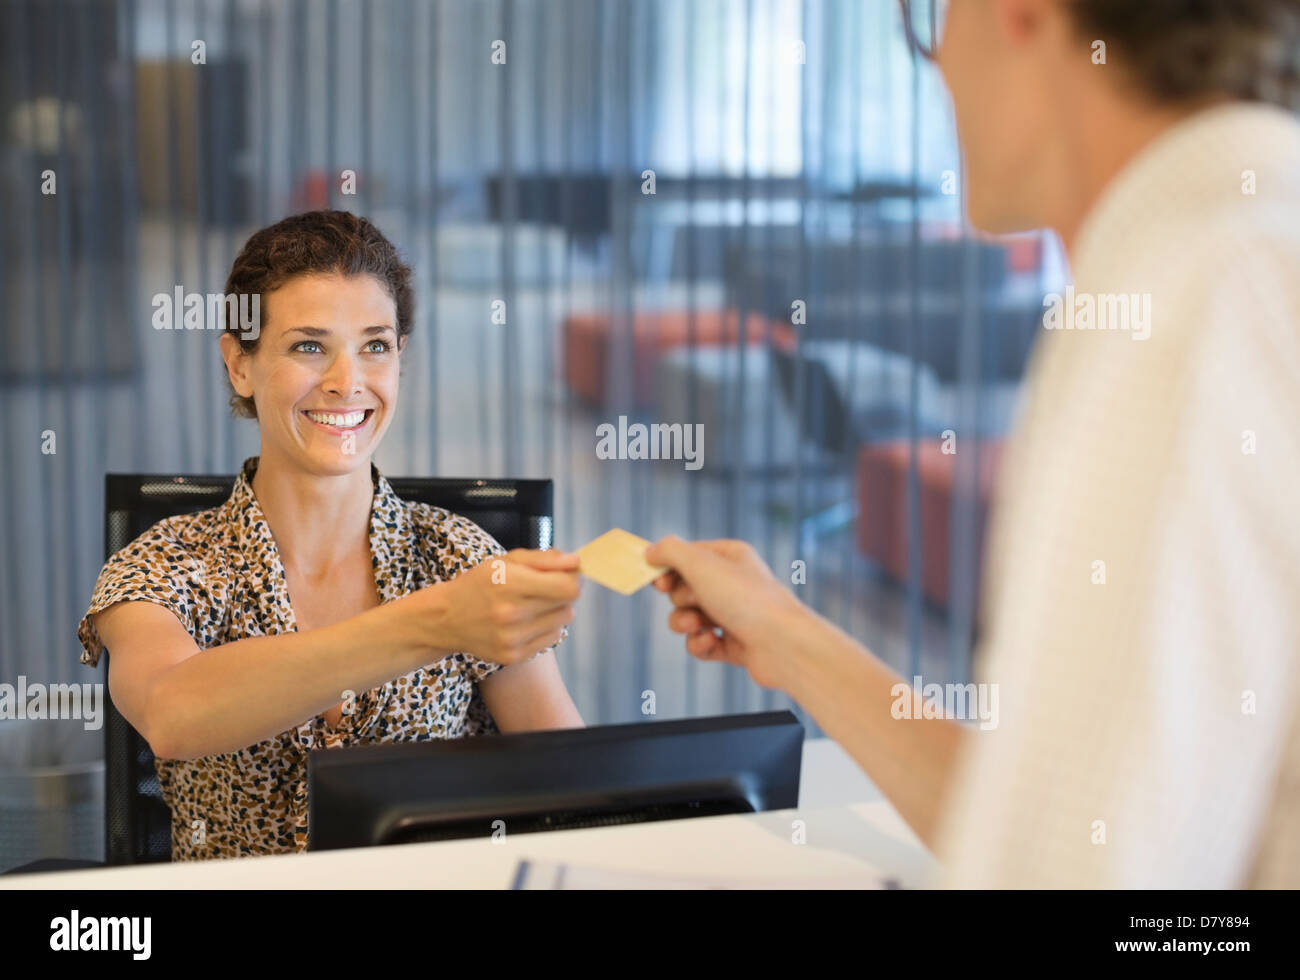 Businesswoman handing credit card to co-worker - Stock Image